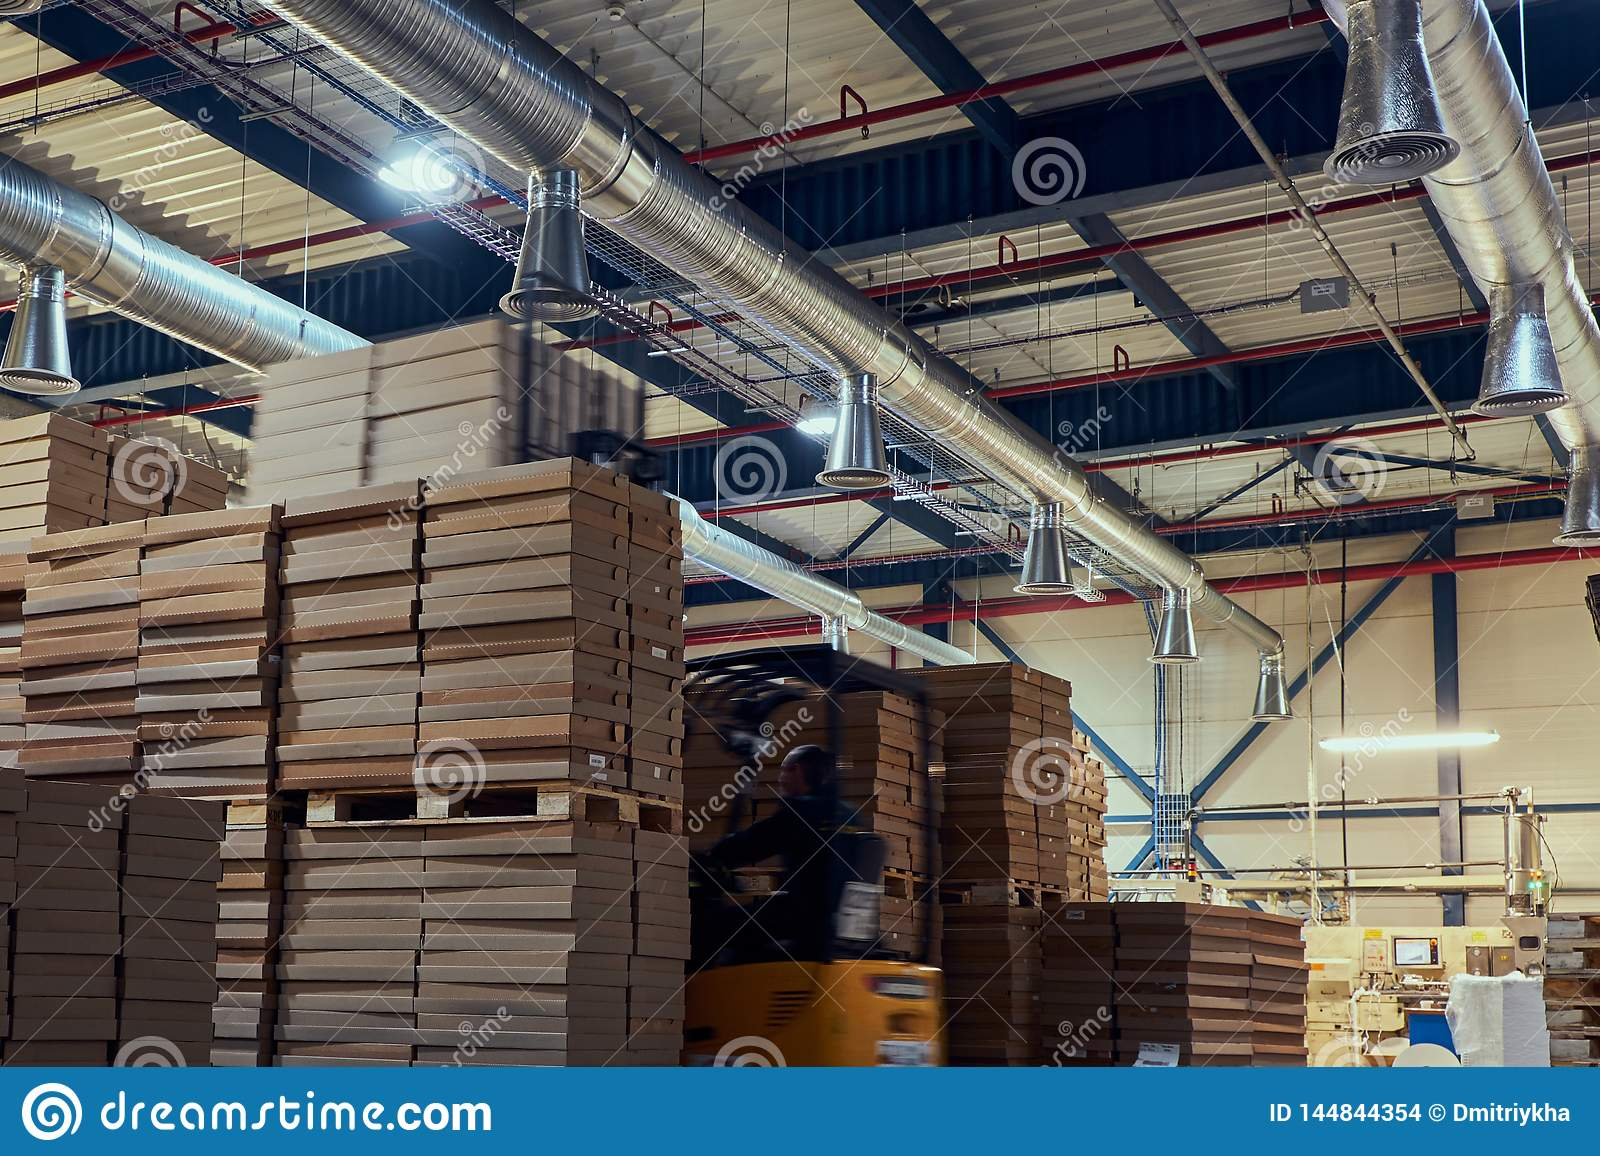 Warehouse manufacturing products for industrial use from paper and cardboard